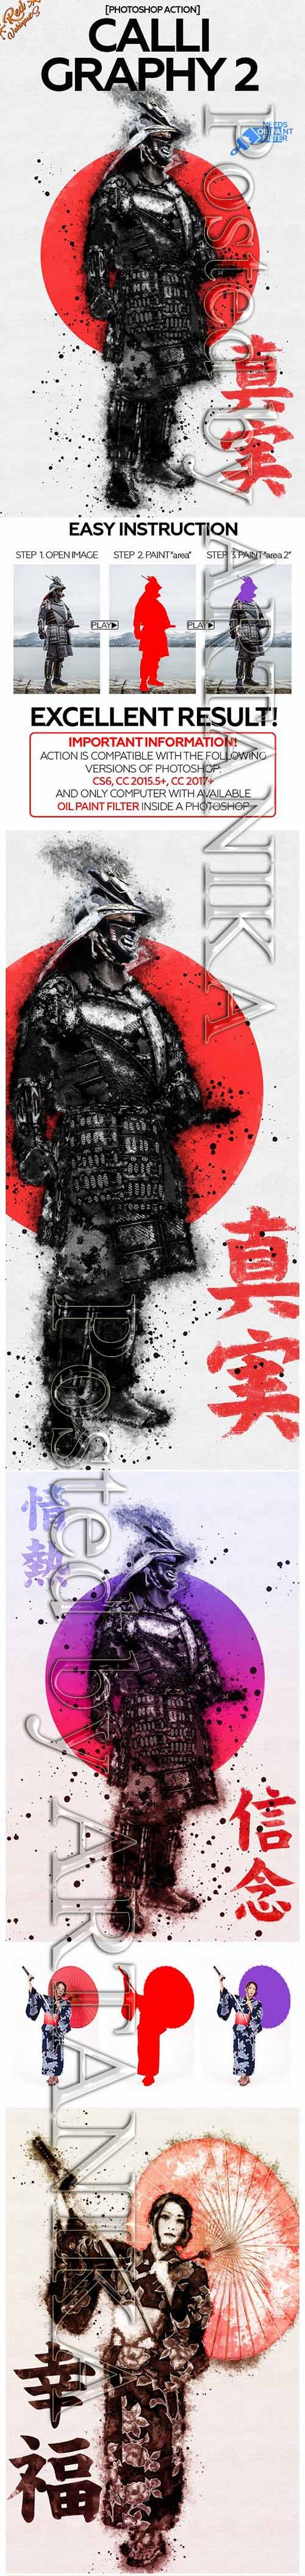 GraphicRiver - Calligraphy 2 Photoshop Action 21210621